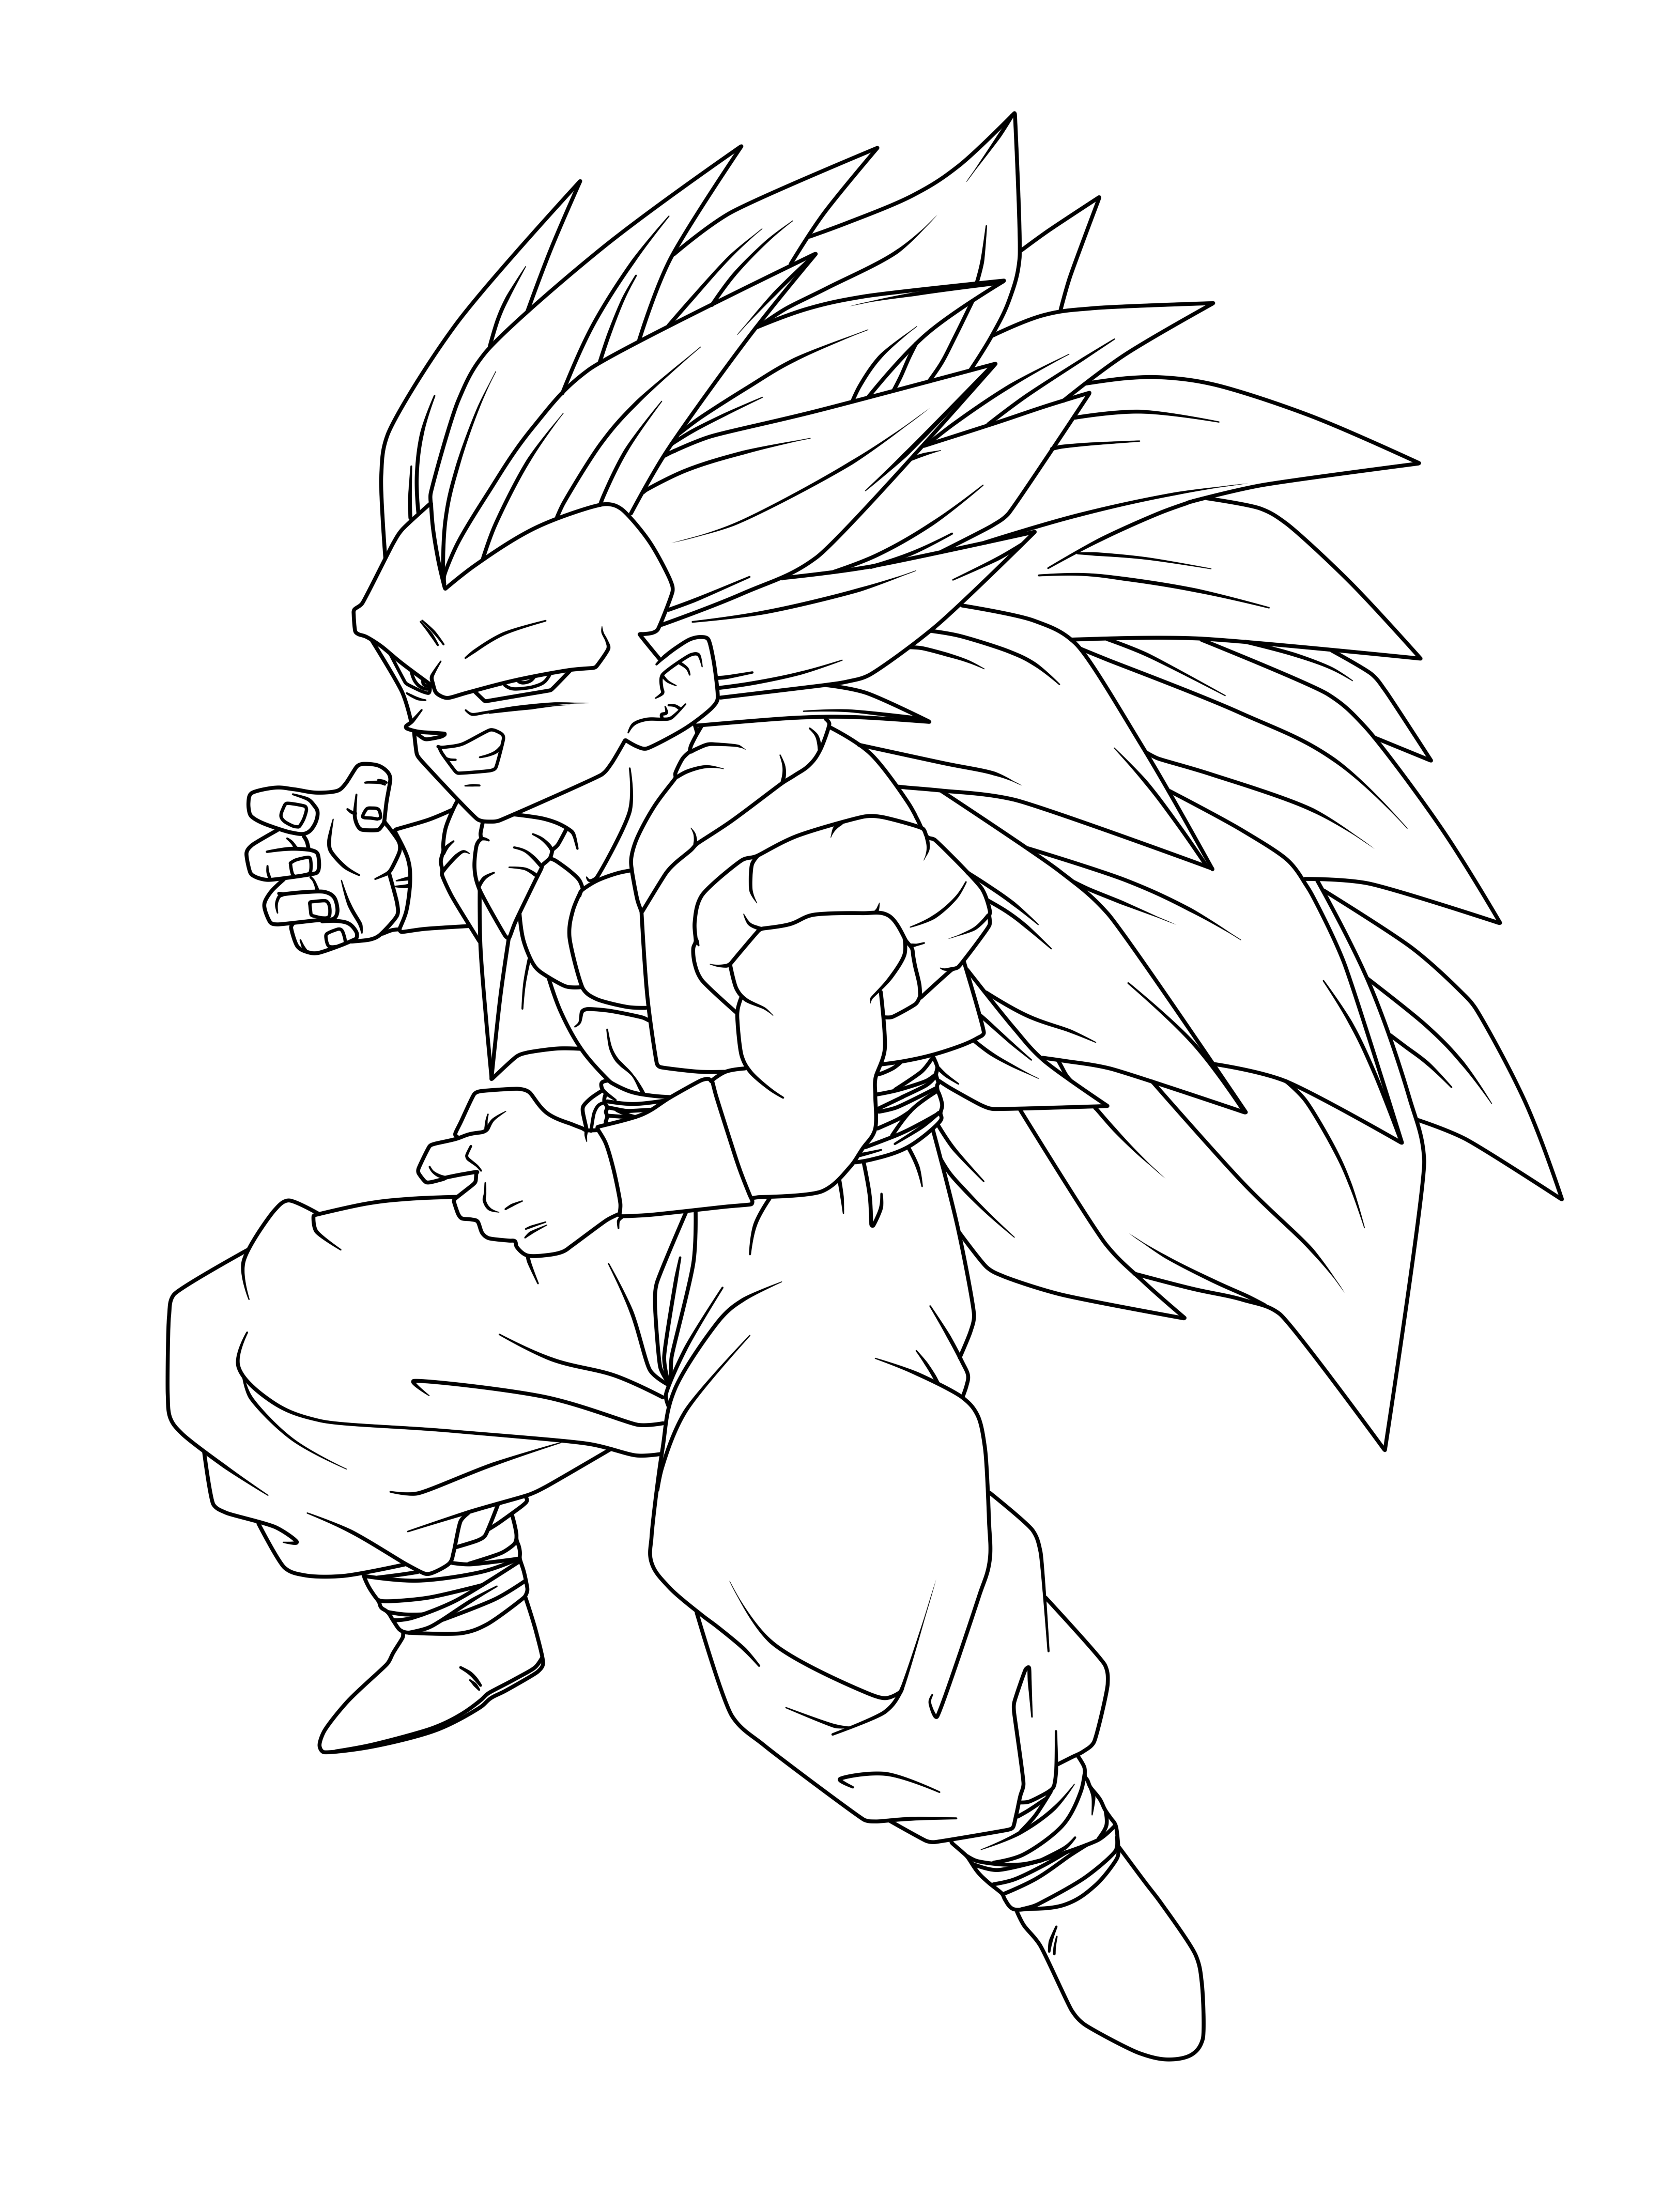 gotenks super saiyan 3 coloring pages - ss3 gotenks free coloring pages